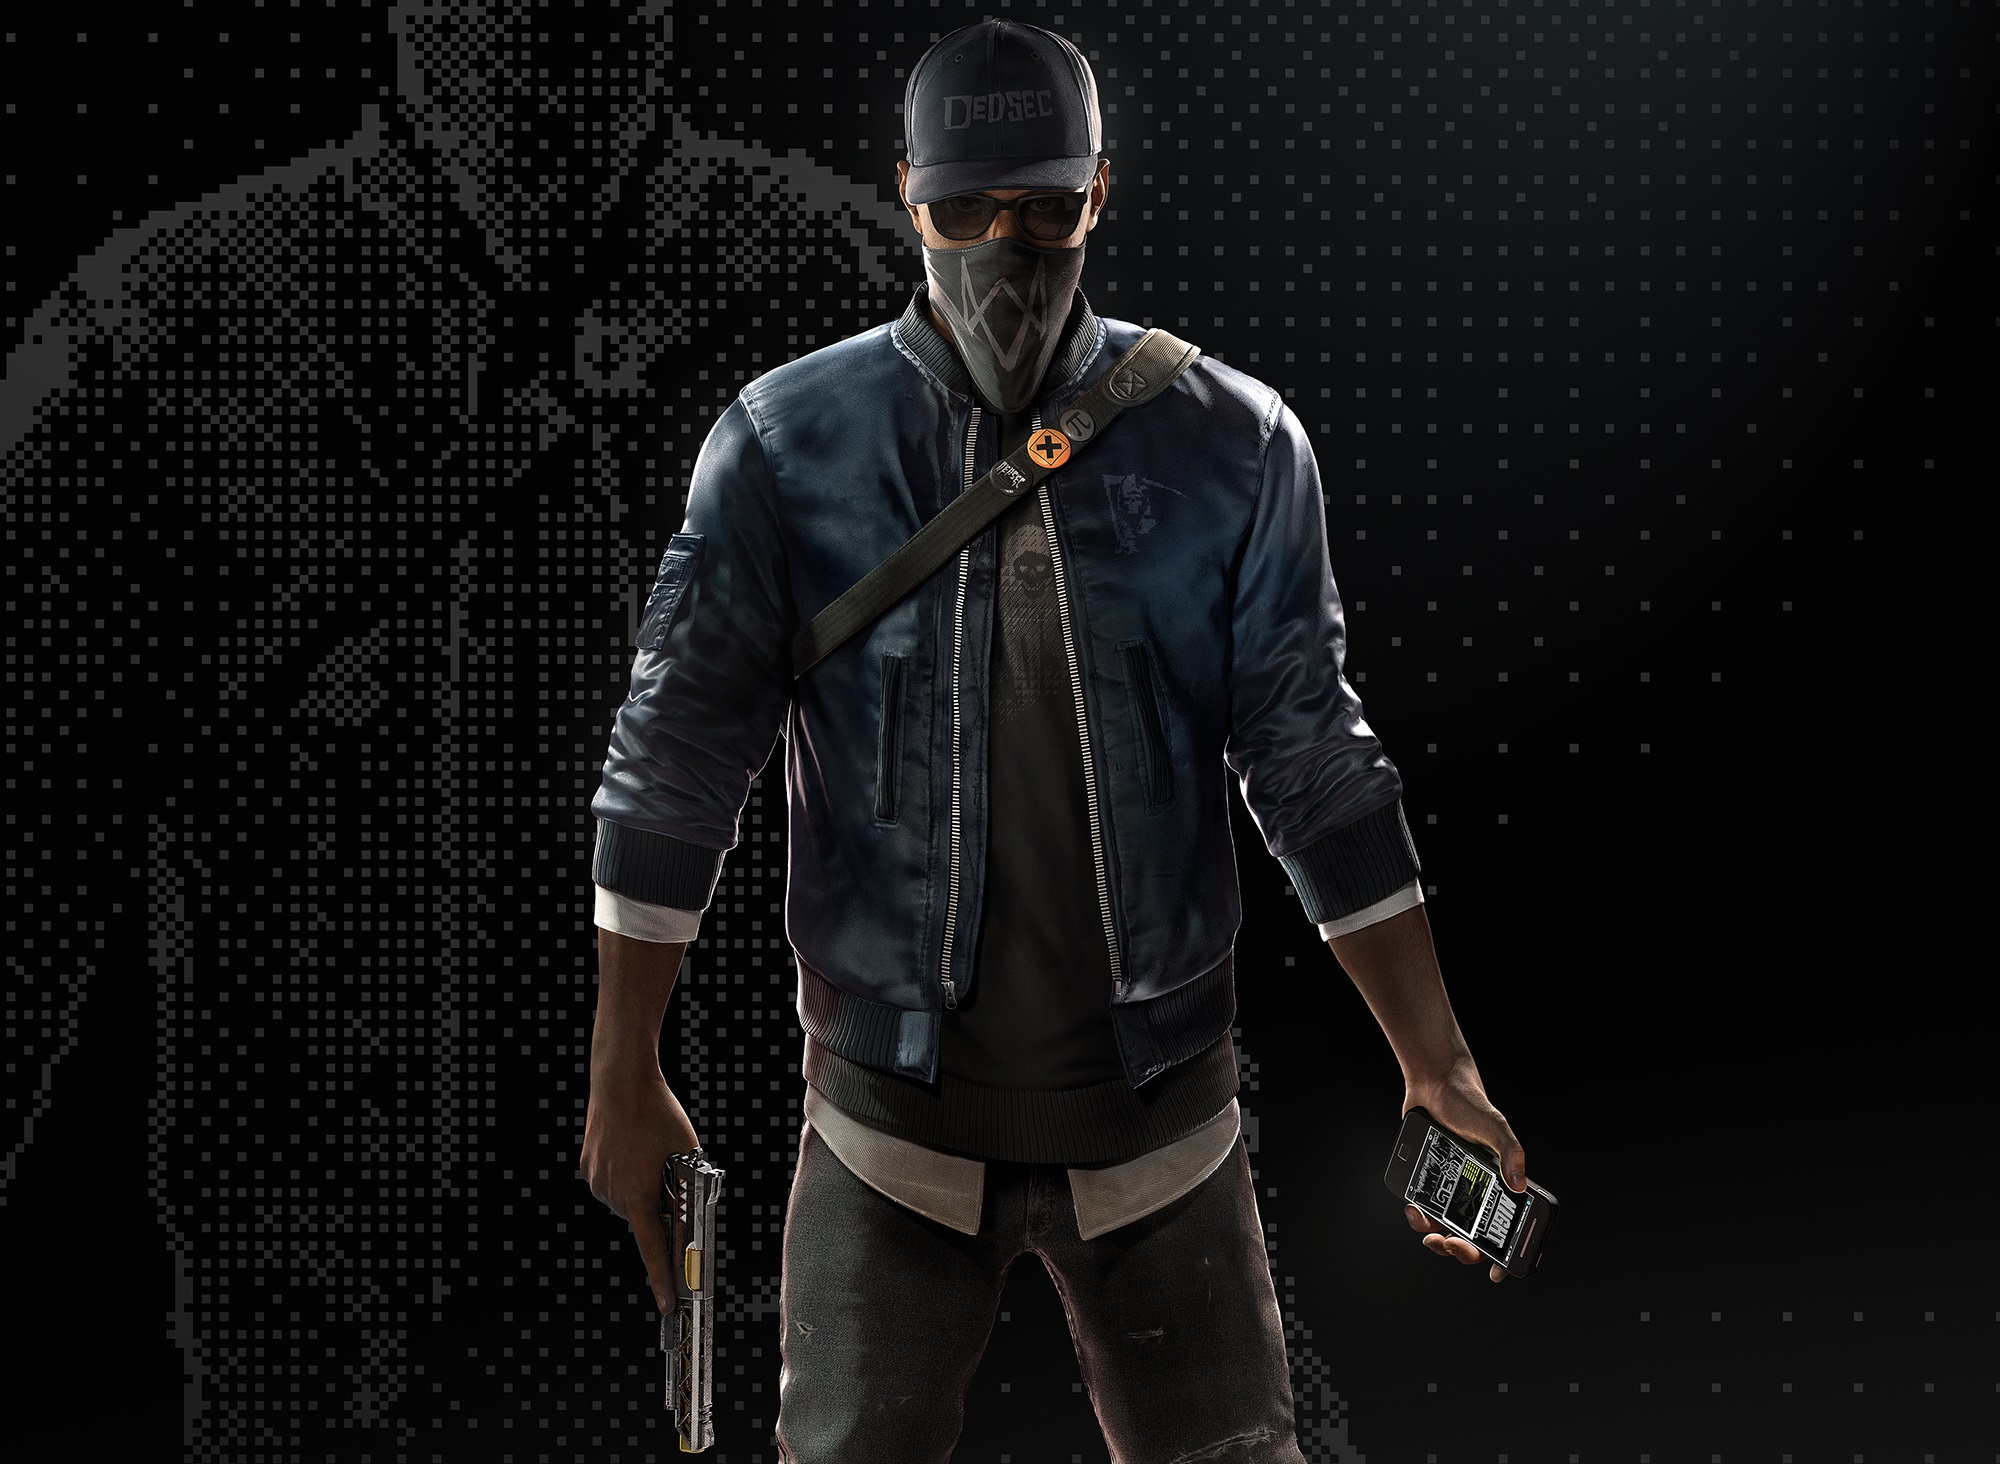 Pictures Of Watch Dogs 2: Watch Dogs 2 Wallpapers, Pictures, Images